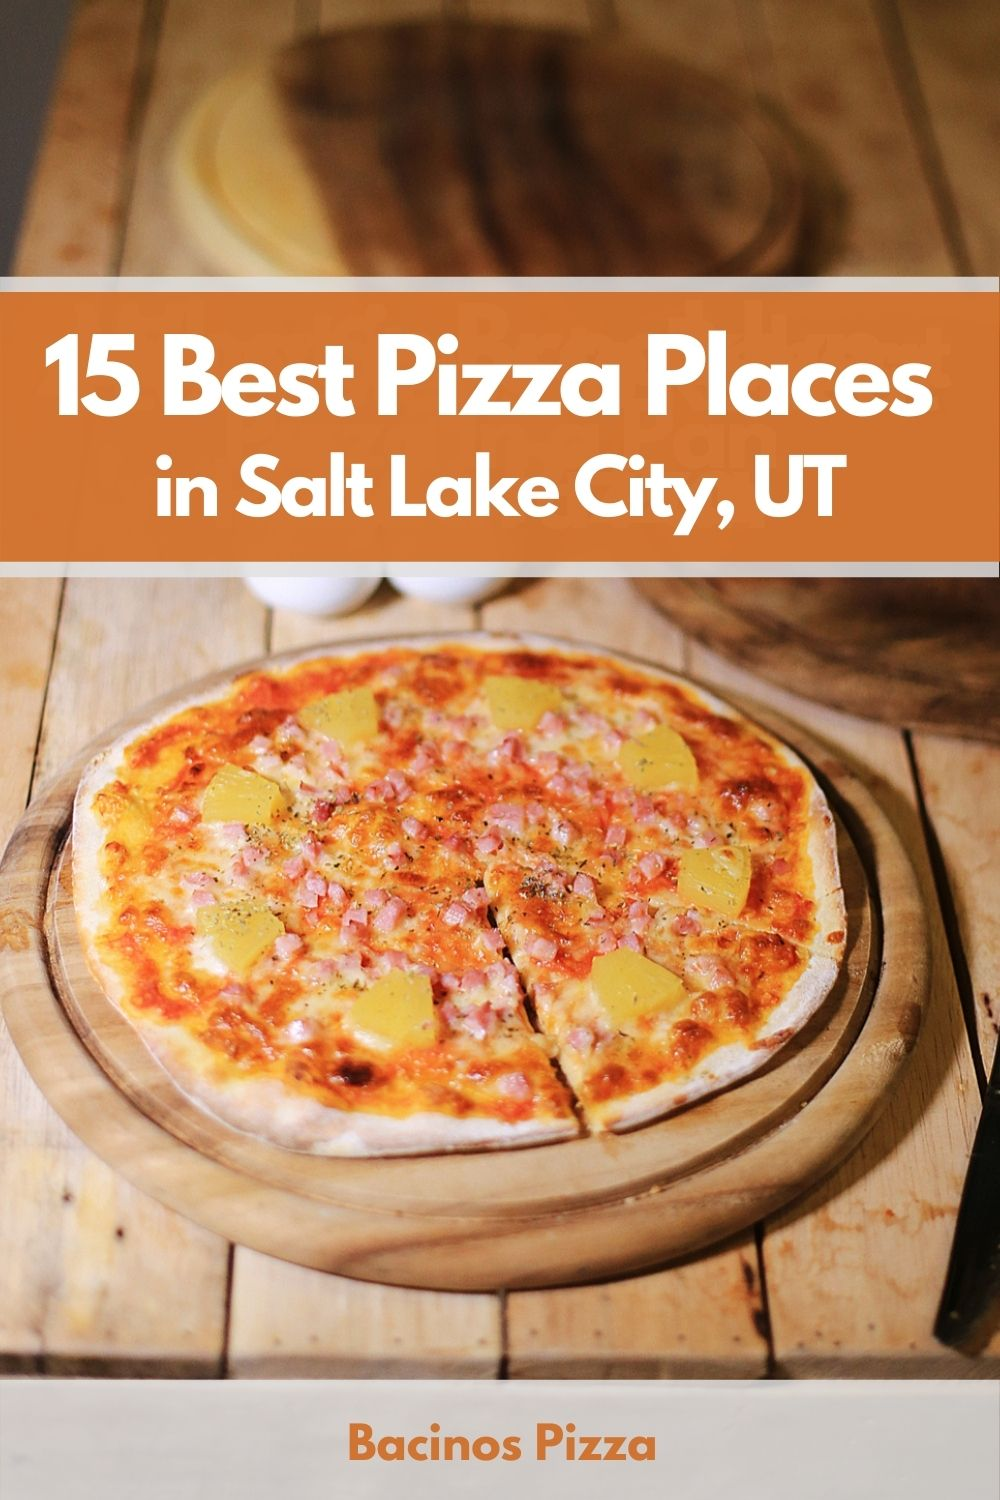 15 Best Pizza Places in Salt Lake City, UT pin 2